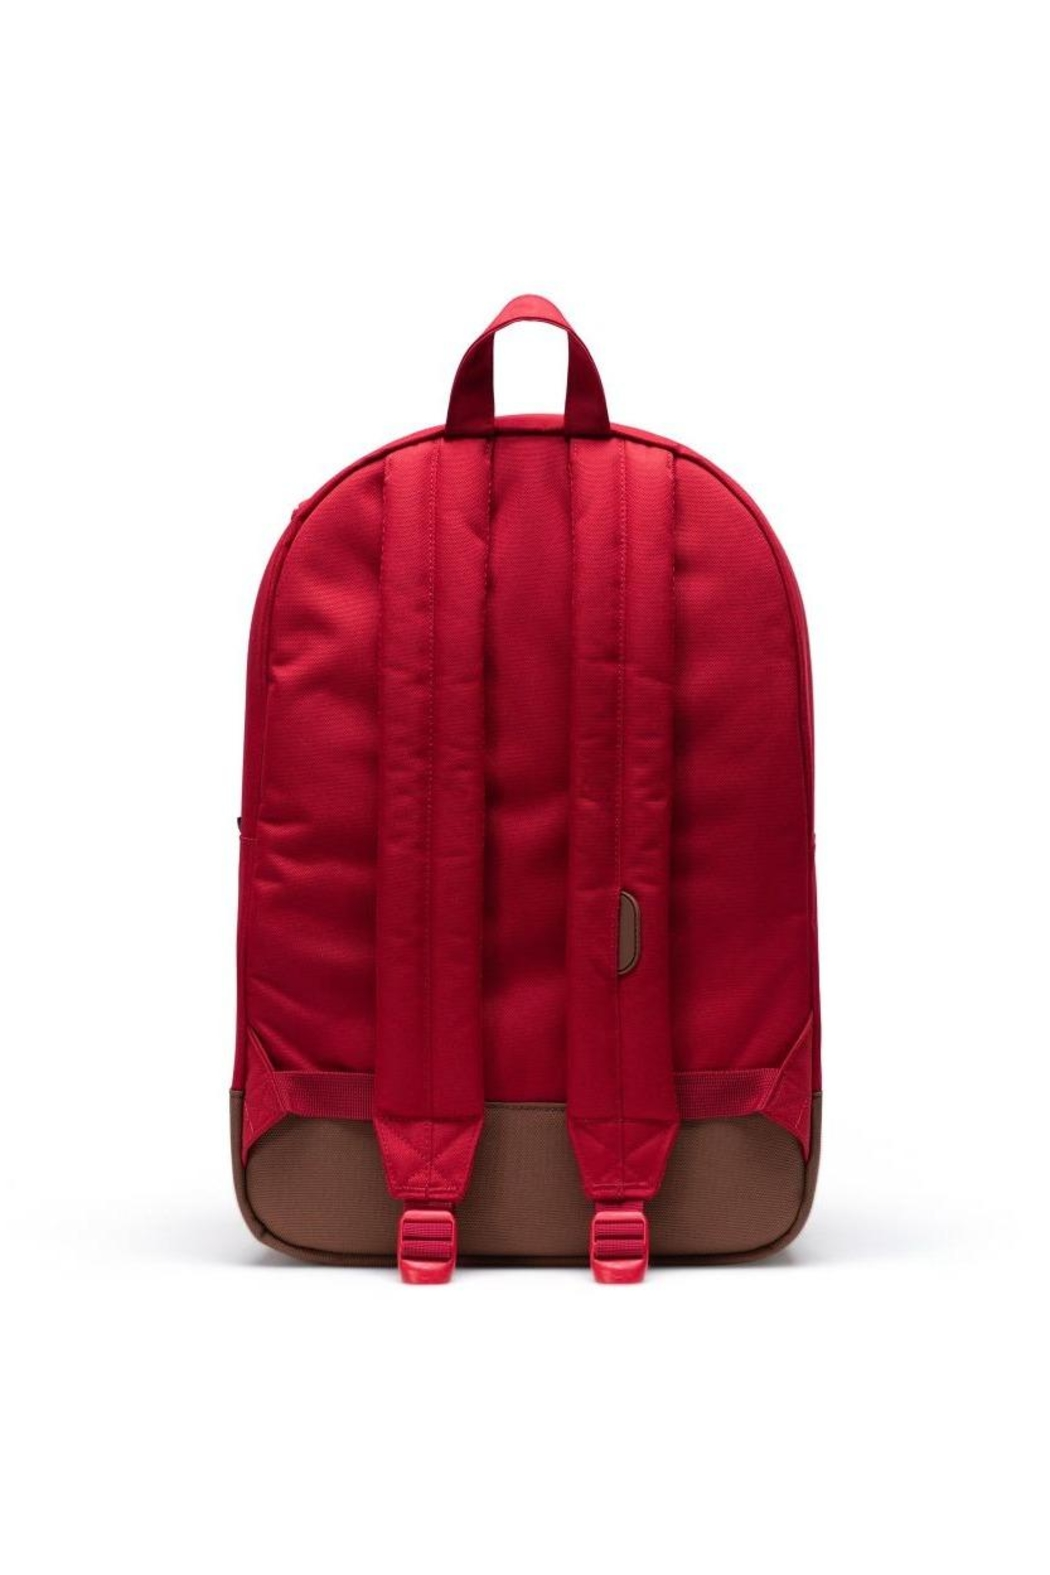 Herschel Supply Co. Red Brown Backpack - Back Cropped Image